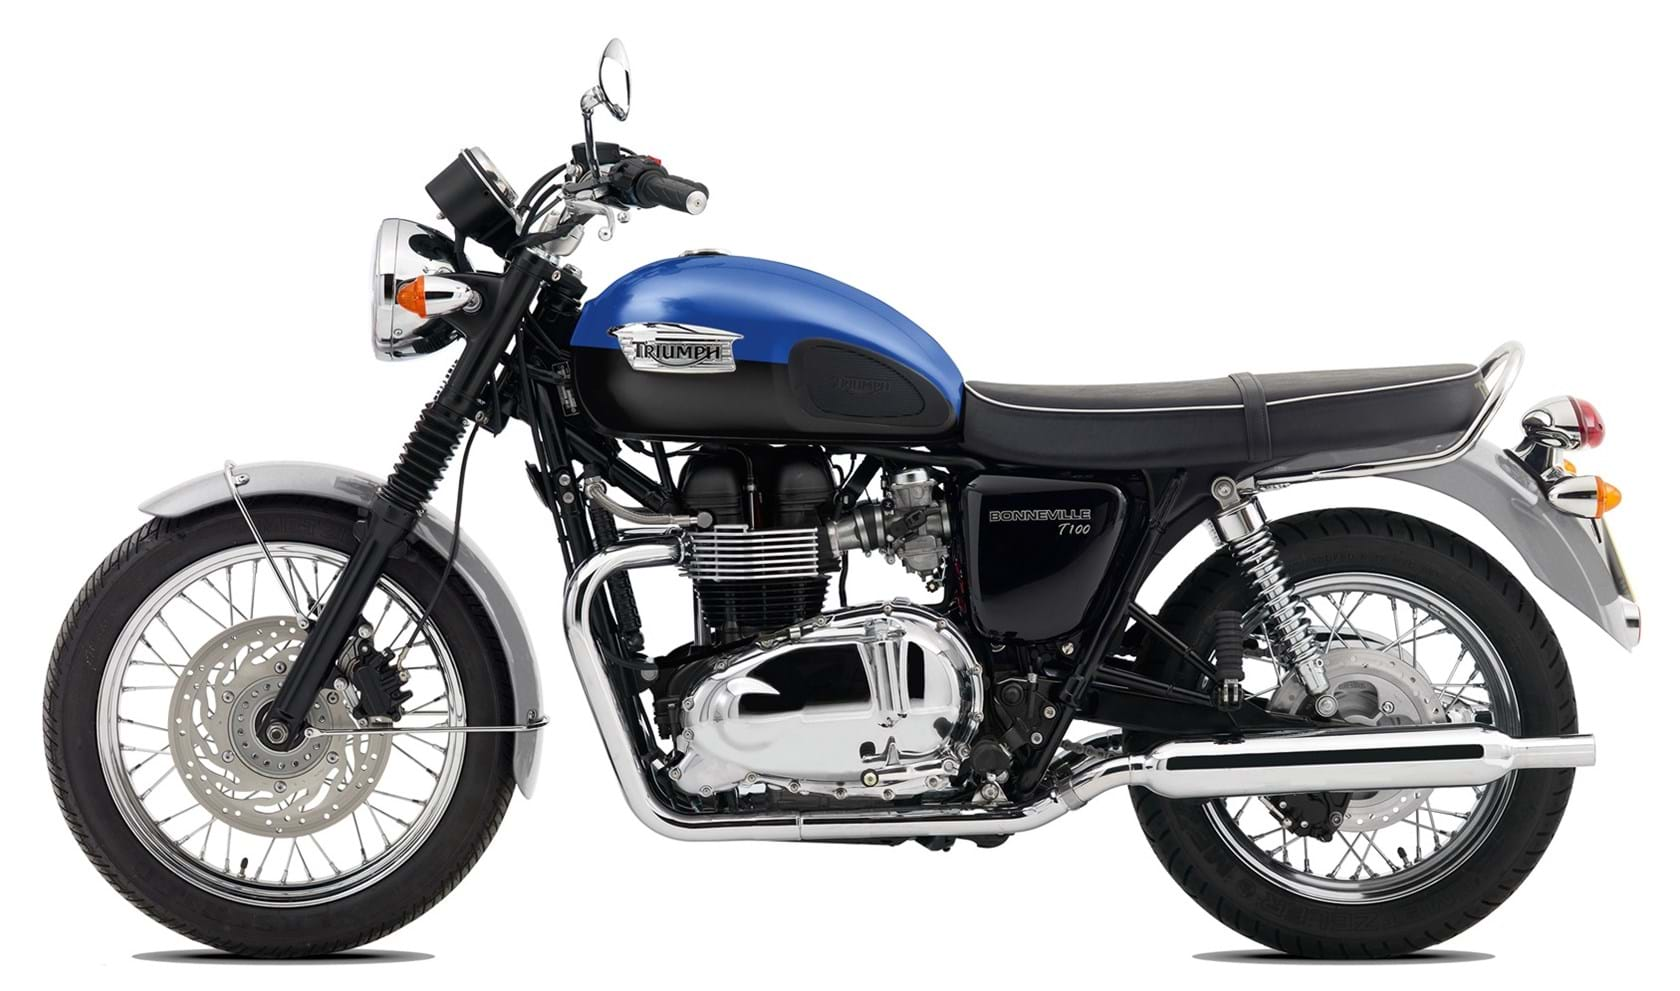 For Sale Triumph Bonneville T100 The Bike Market